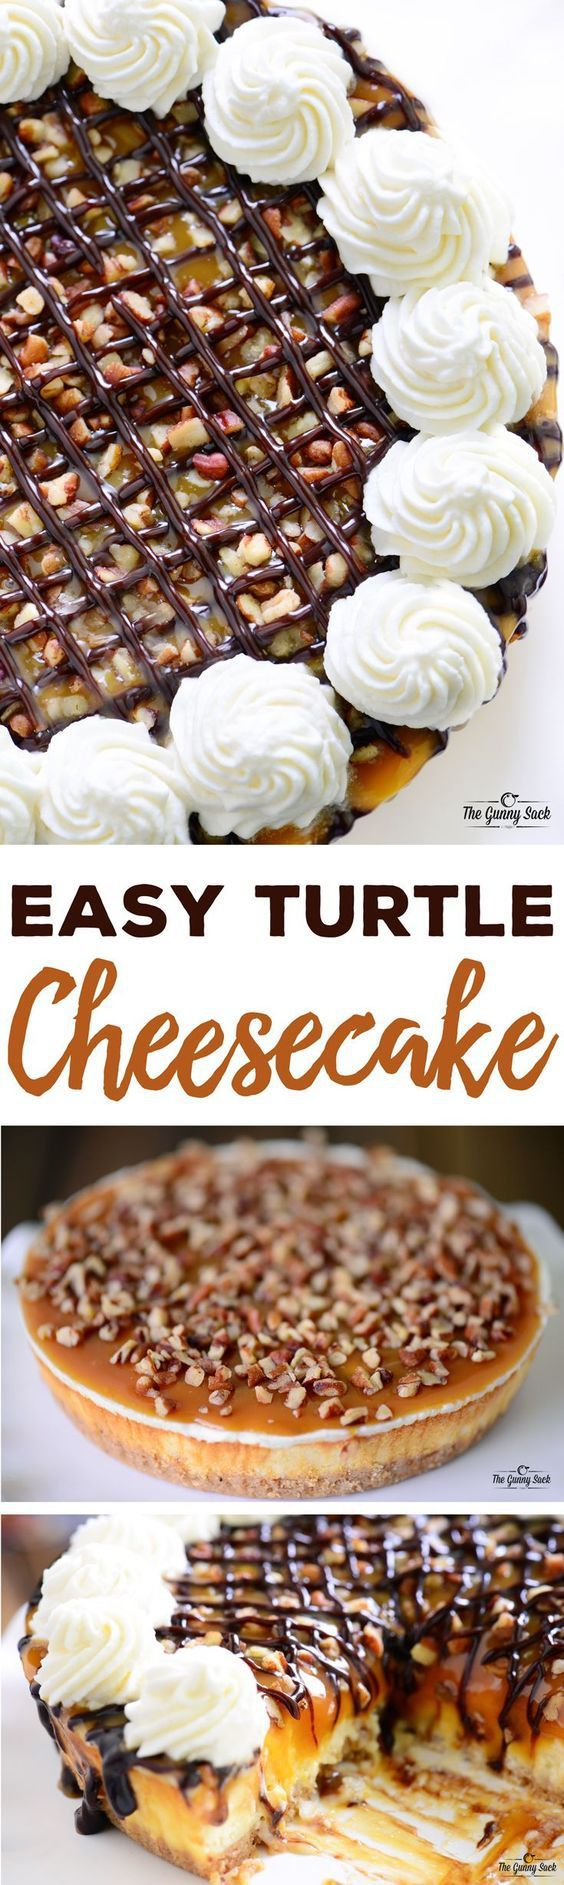 Easy turtle cheesecake recipe made from a Sara Lee Original Cream Cheesecake. Top it with chocolate caramel pecans and whipped cream. Great for the holidays!